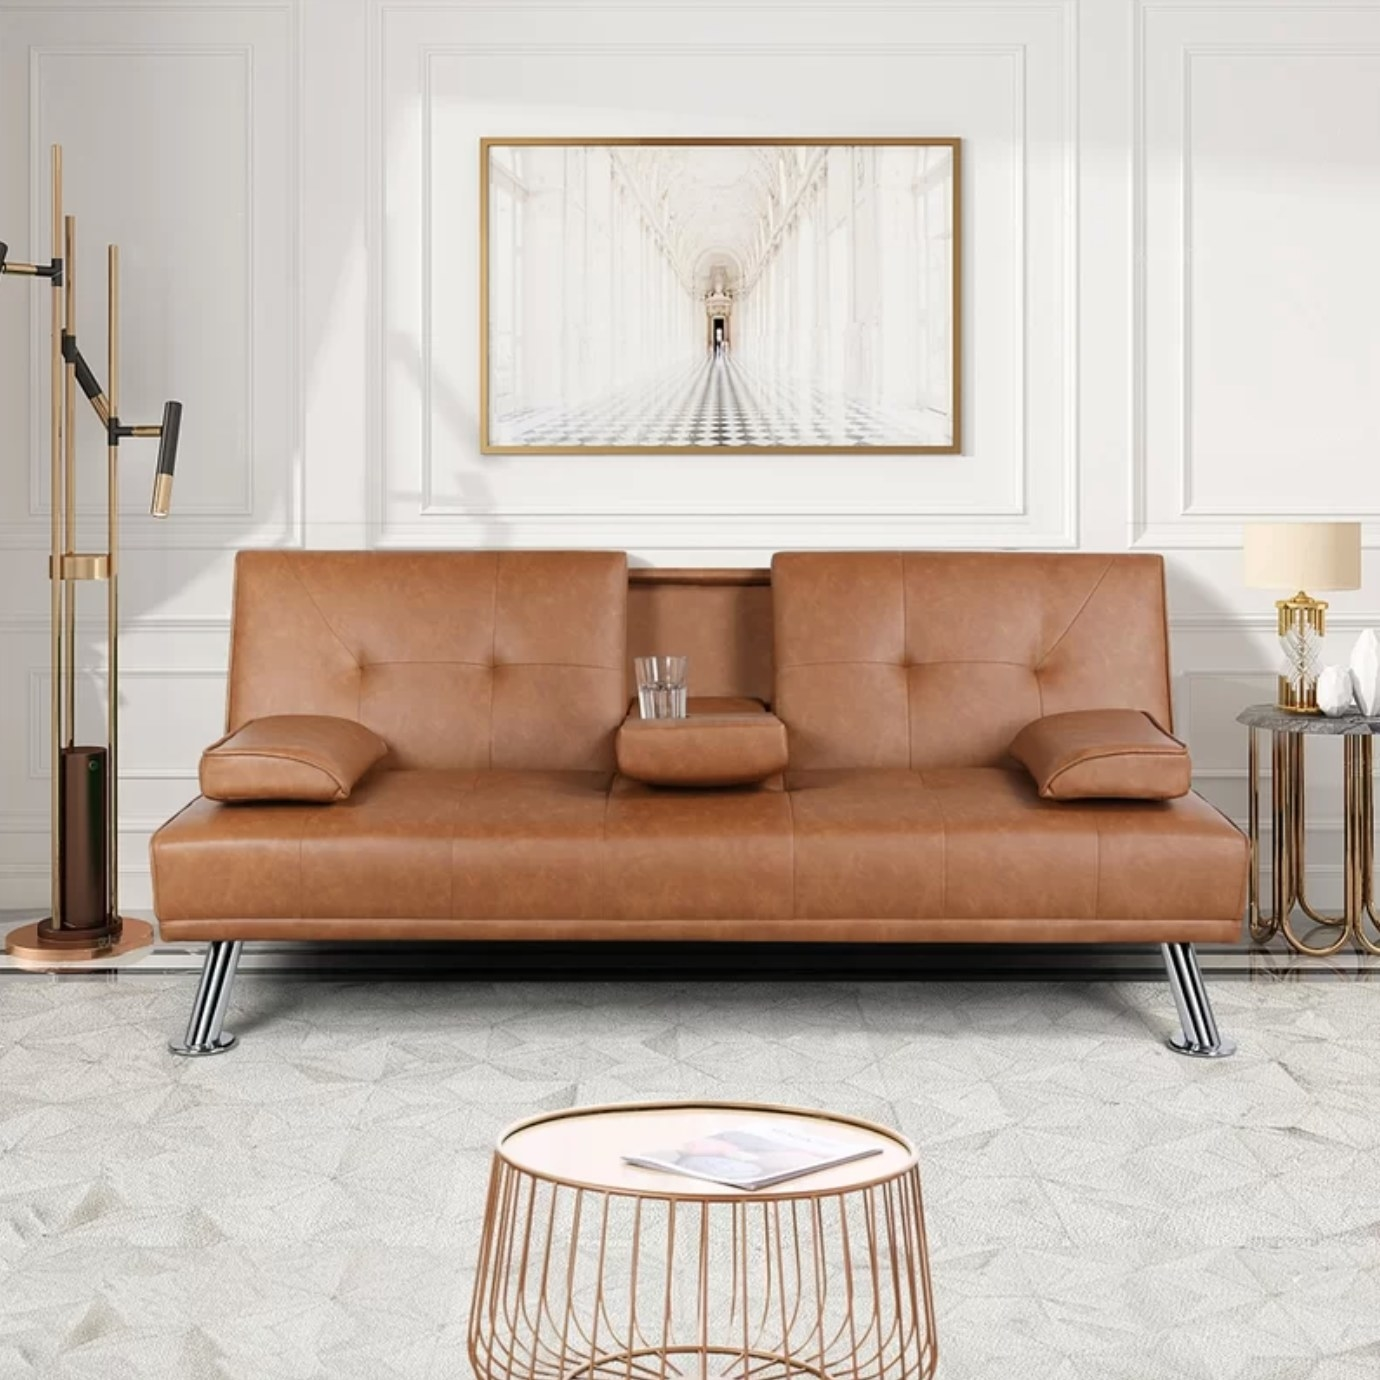 The convertible sofa in brown faux leather